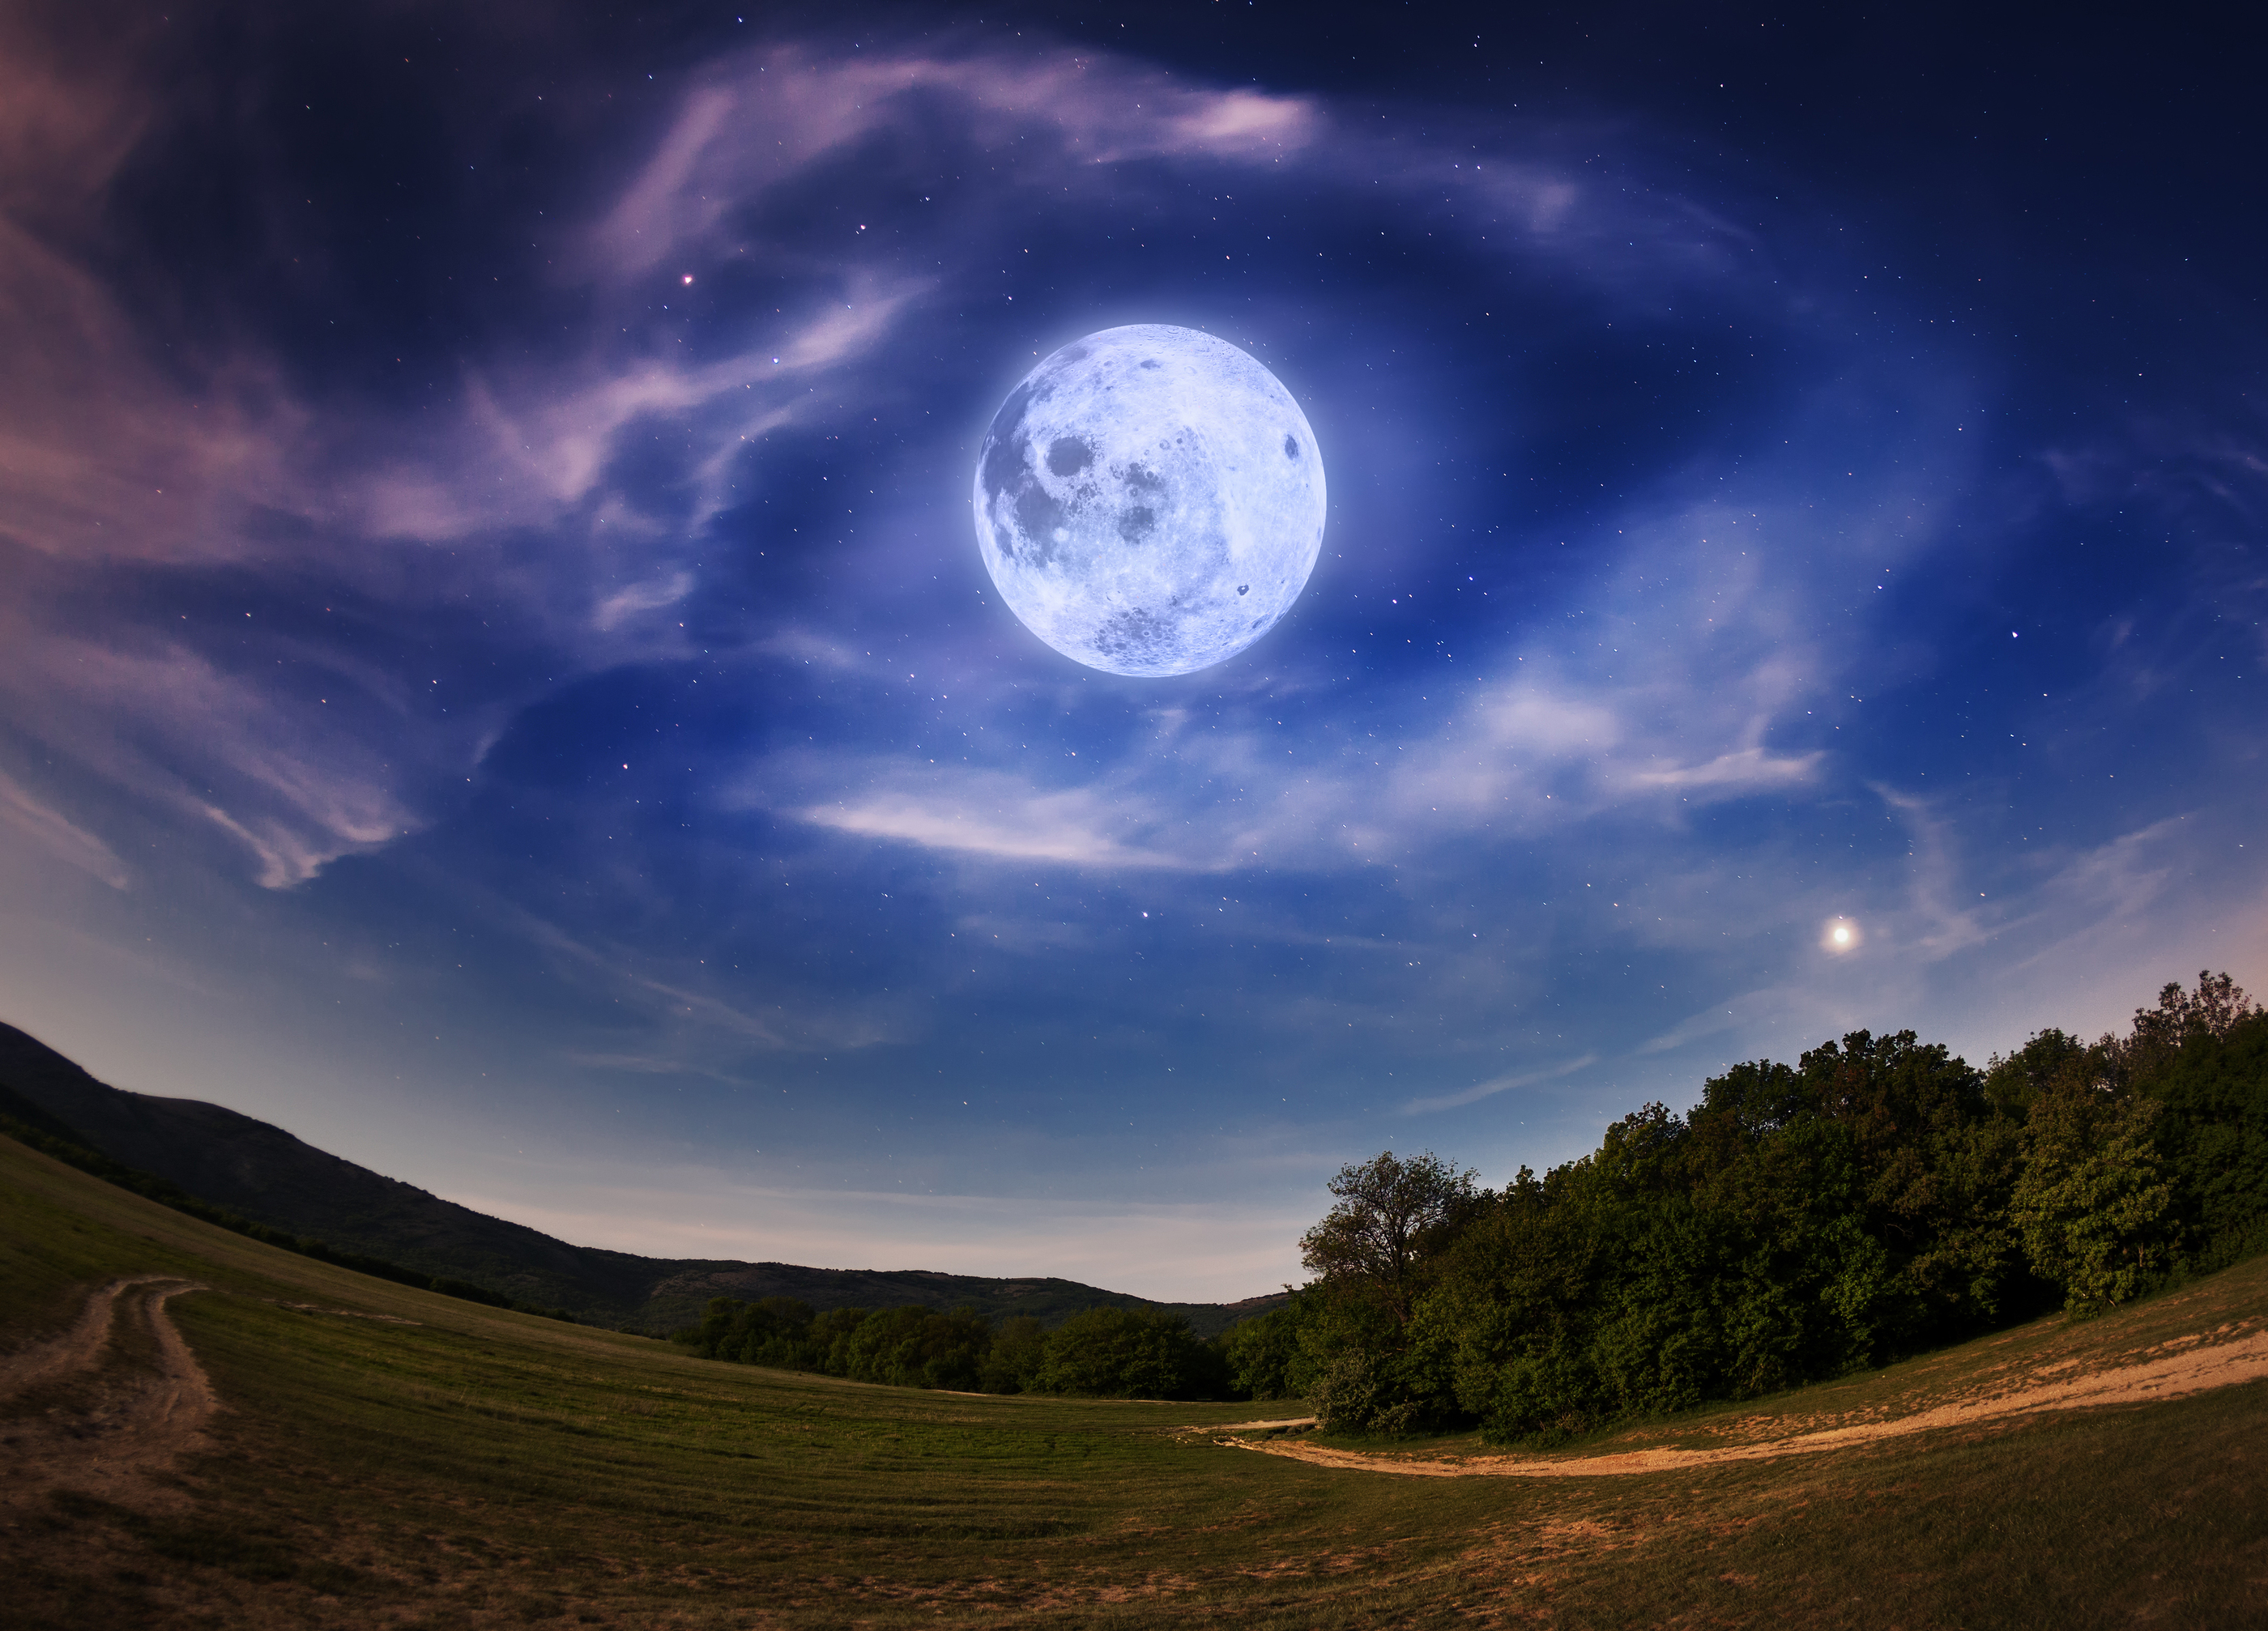 bigstock-Beautiful-Night-Sky-With-The-F-